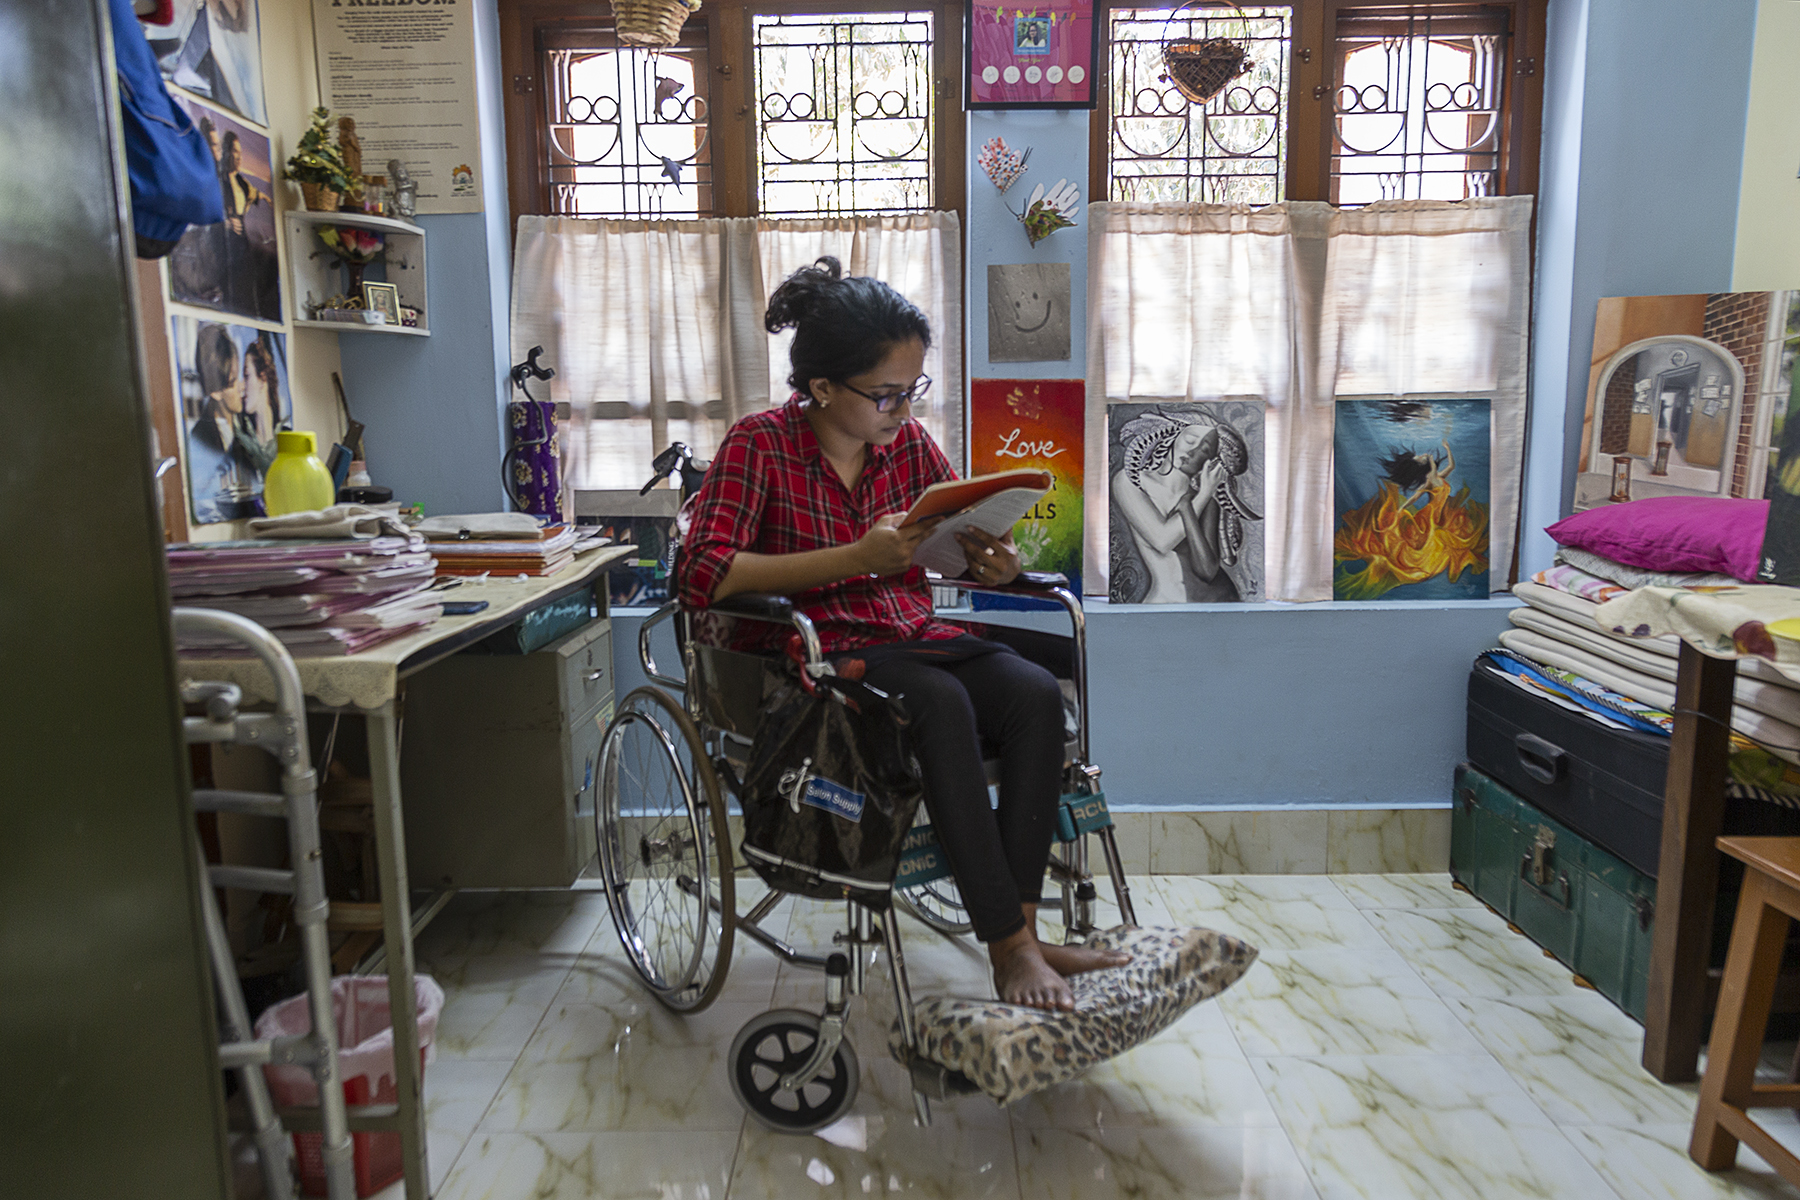 Nincy in her wheelchair in her room is reading a book. Her hair is tied back and she wears a red shirt with big black-and-white checks, the sleeves folded up to the elbow, and black skintight jeans. There are two adjacent windows behind her with grills and half-curtains. Two of her paintings are propped up on a window sill. In the far right corner a large black metal trunk sits on top of a similar green one. In the far left corner is a steel table with drawers, piled high with sketchpads.